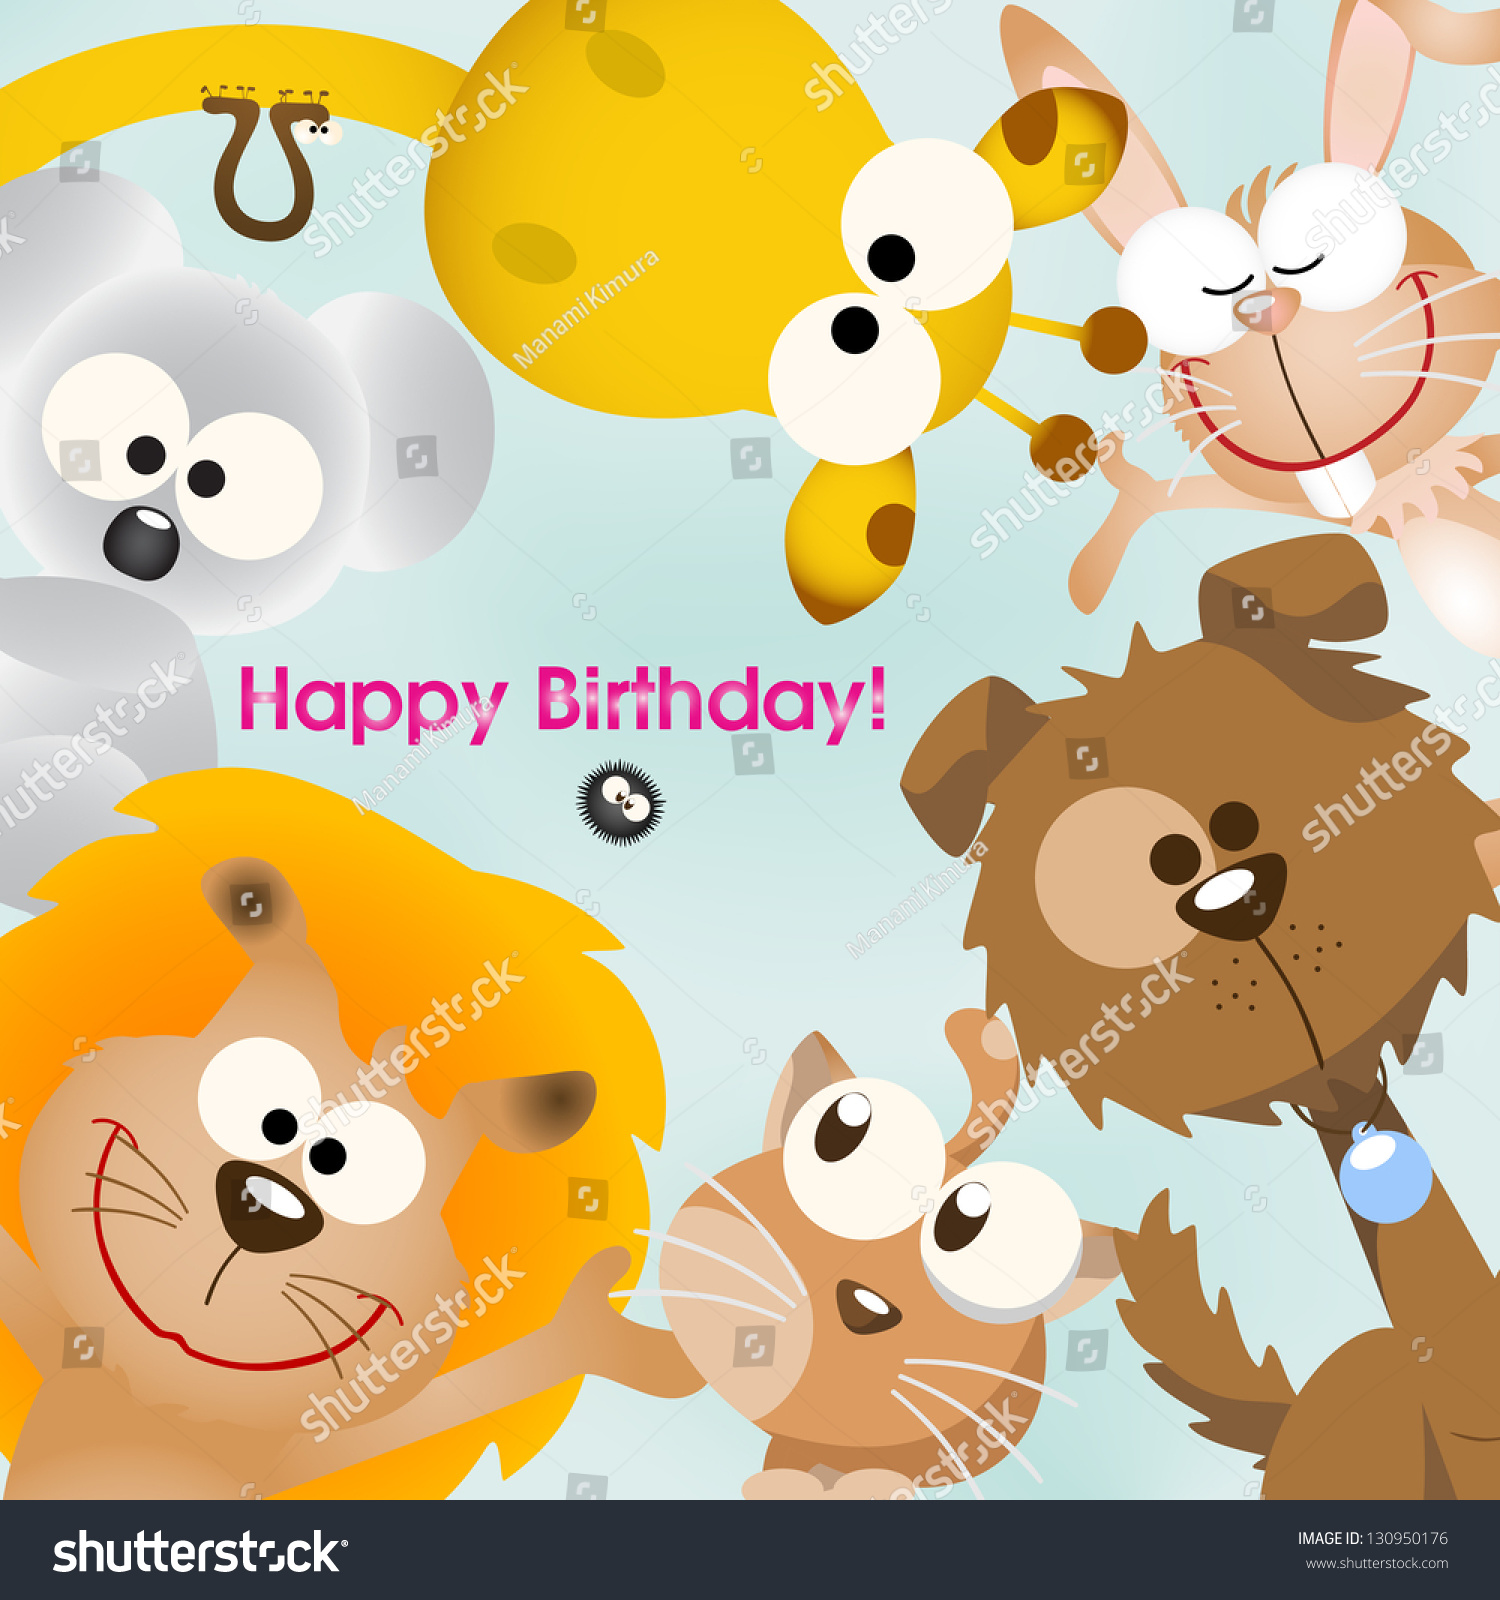 Animal Birthday Cards funny romantic ecards – Make a Birthday Card Online